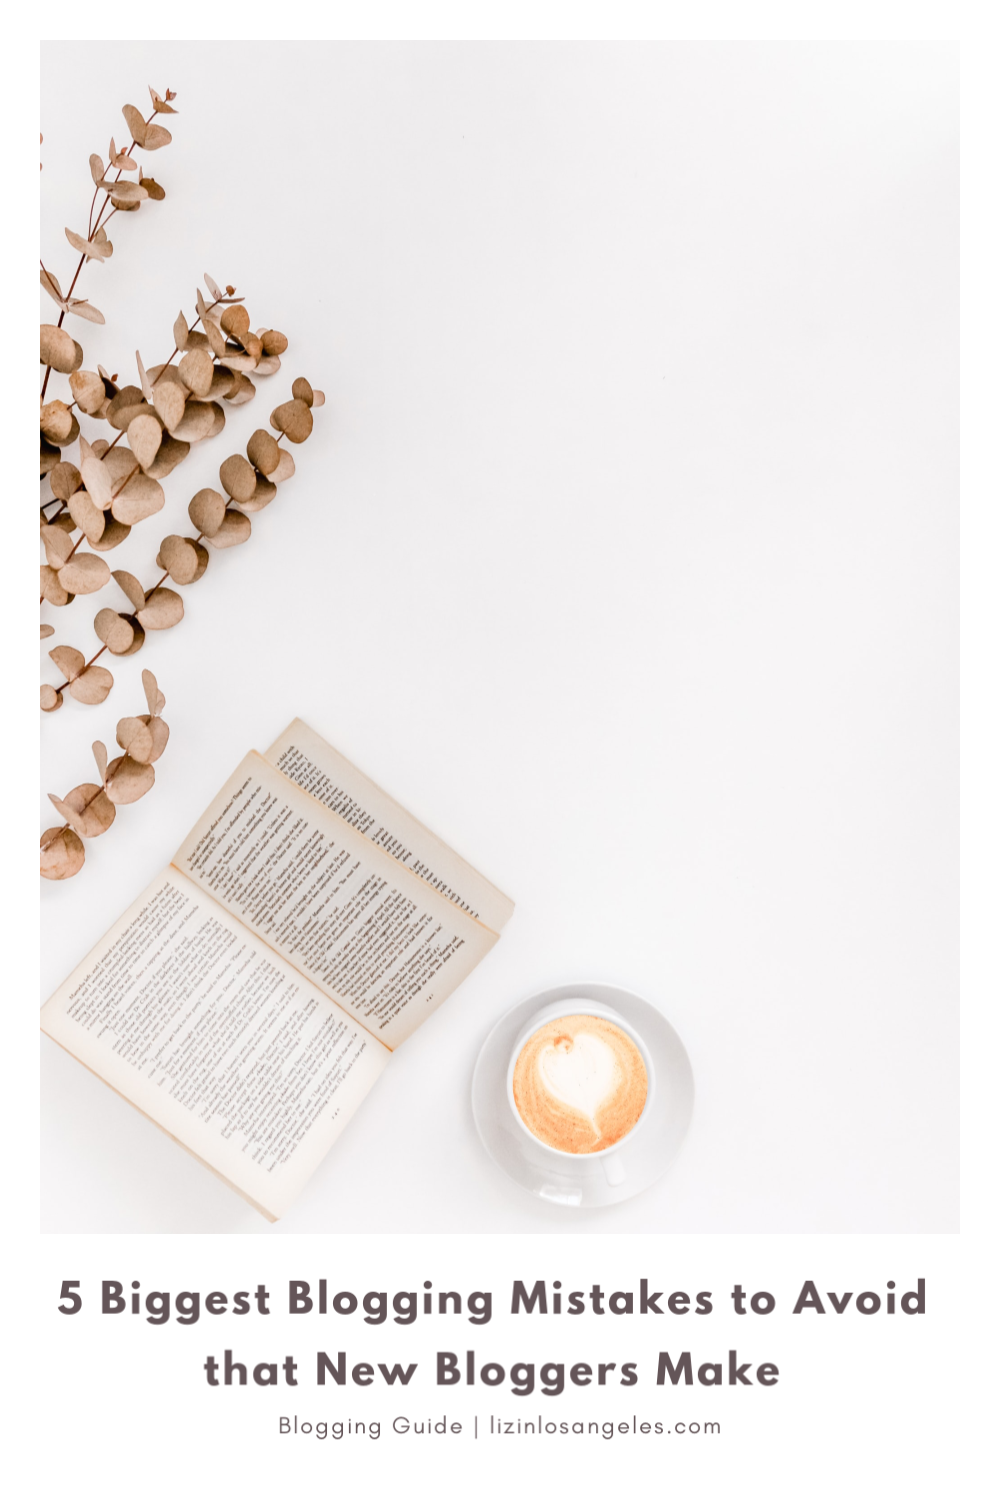 5 Biggest Blogging Mistakes to Avoid that New Bloggers Make, a blog post by Liz in Los Angeles, Los Angeles Lifestyle Blogger: an image of a book and latte